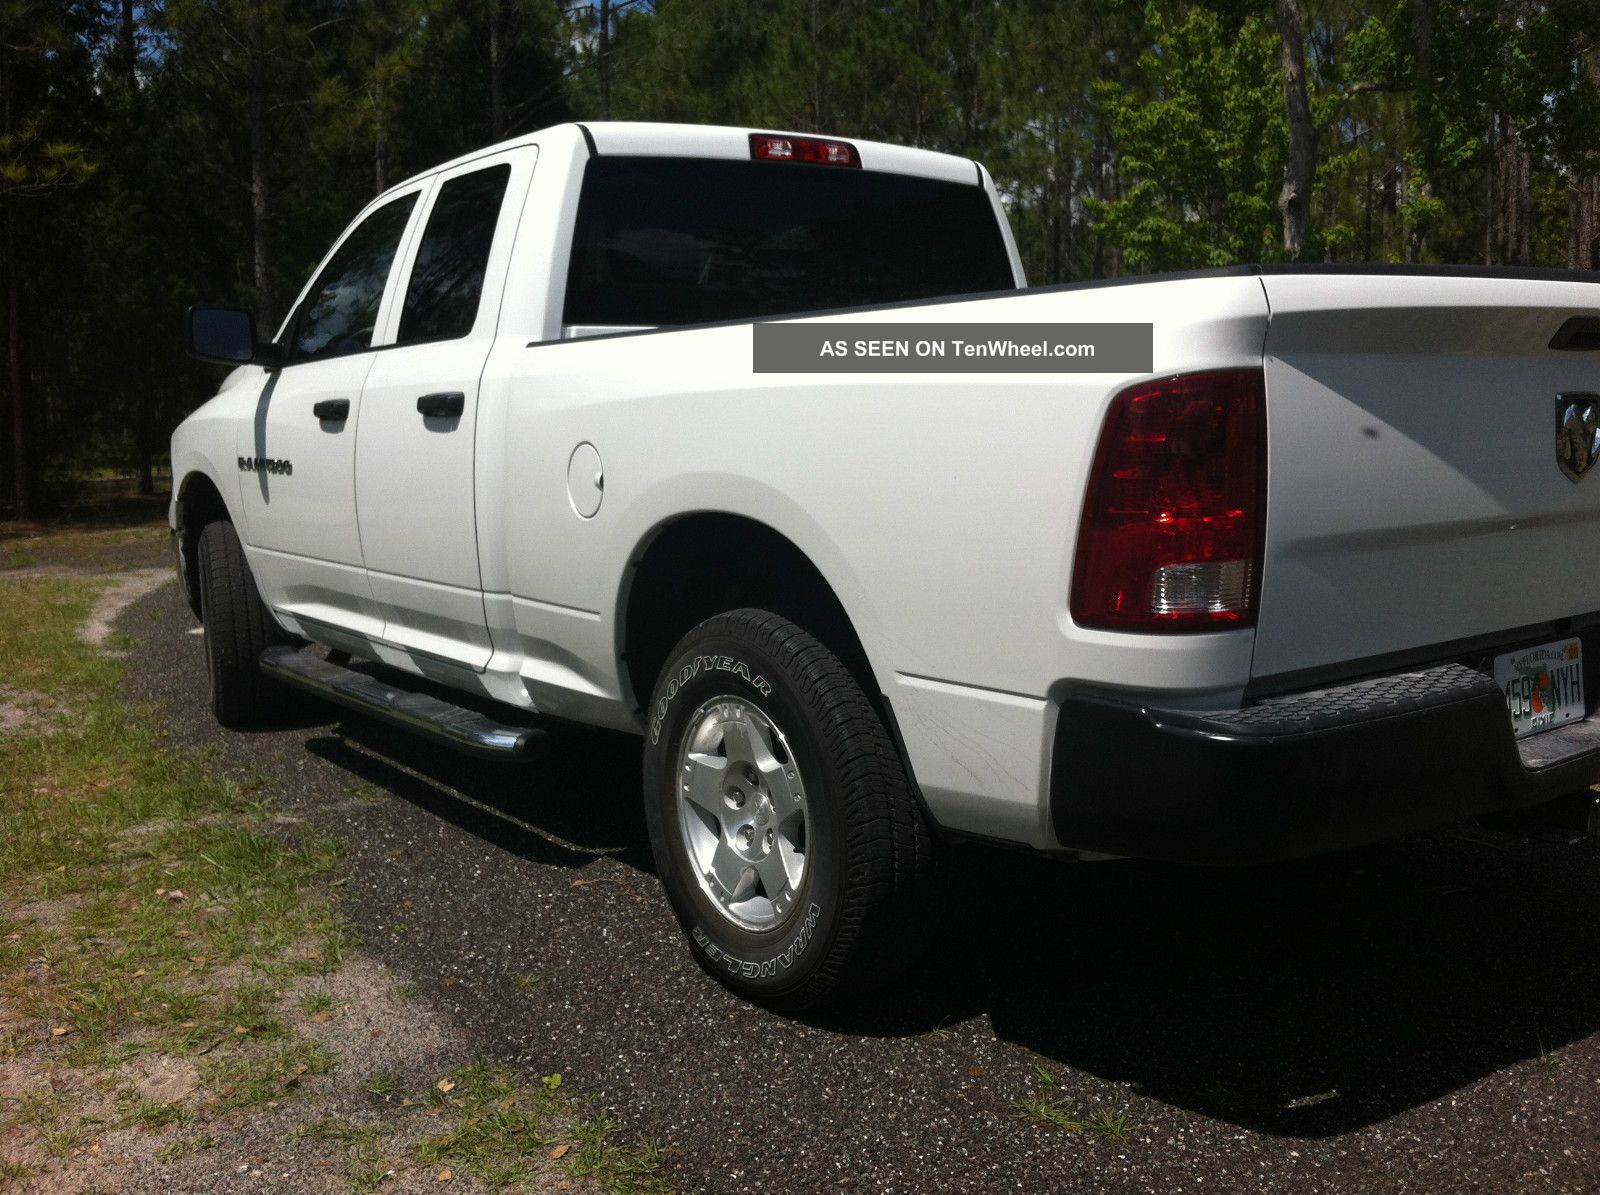 2012 Dodge Ram 1500 4x4 Crew Cab V8 Ram 1500 photo